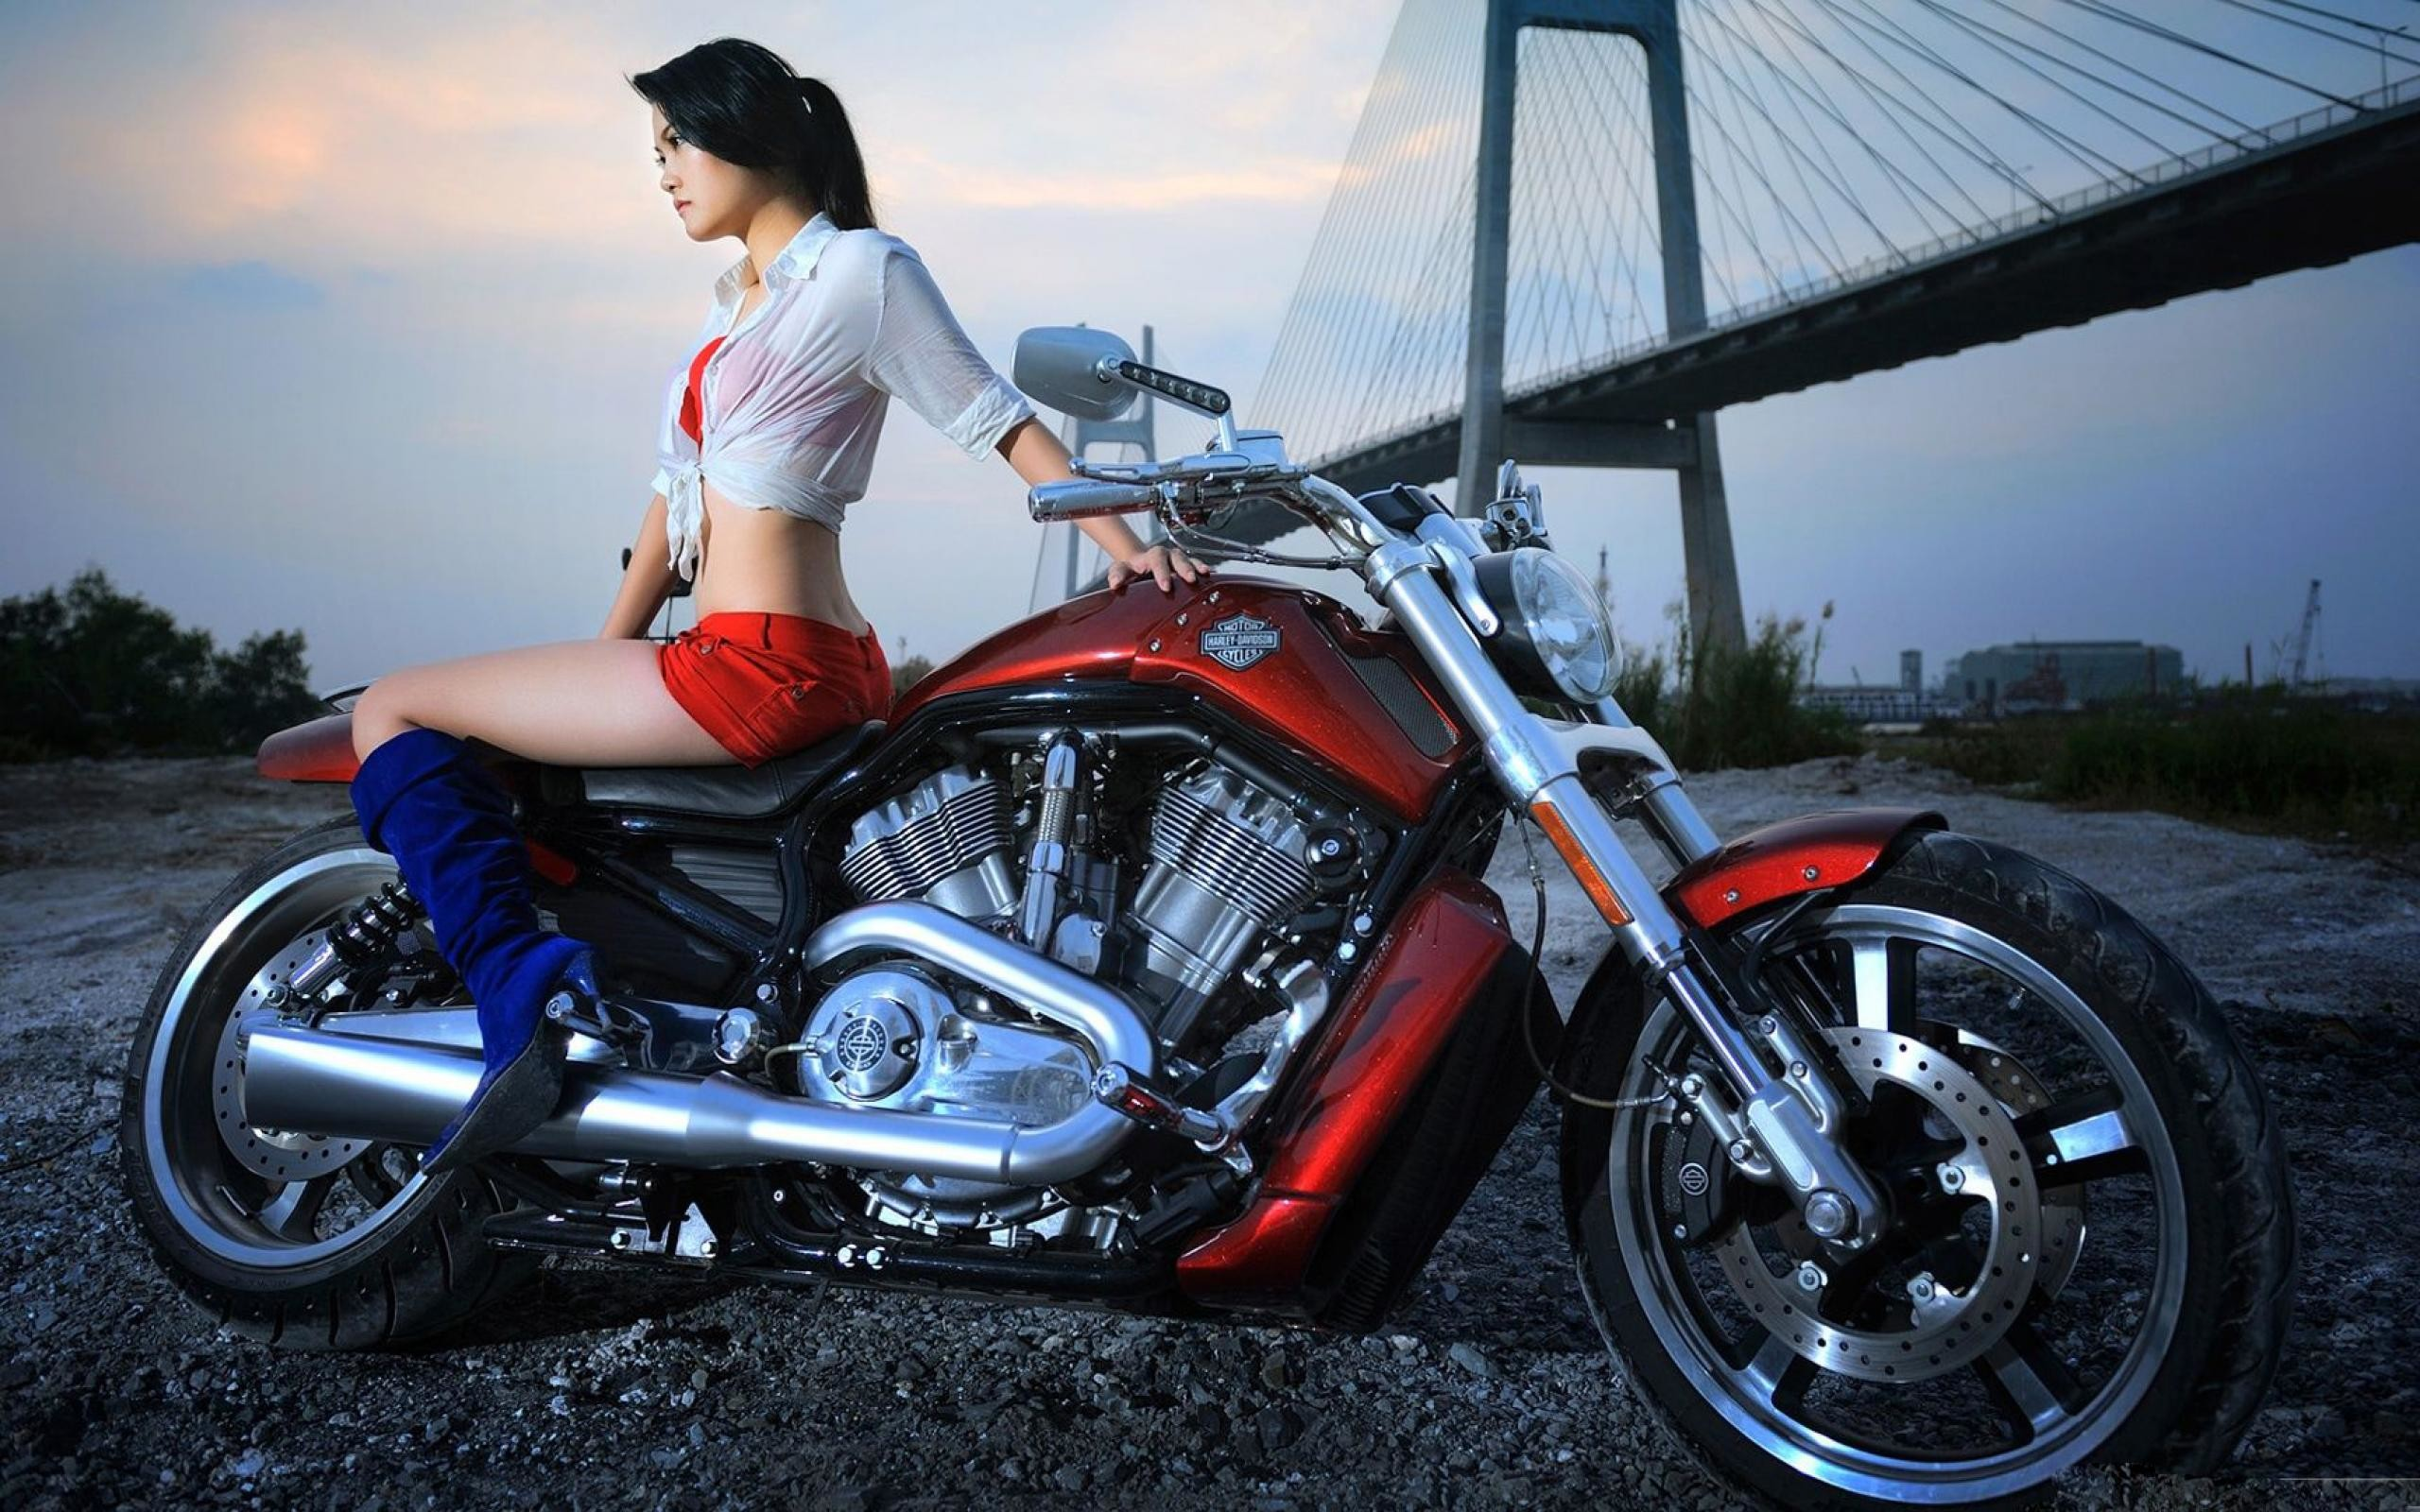 Hottest Harley Girls   … Download Wallpapers Sexy Girls Music Harley  Davidson Motorcycles Best